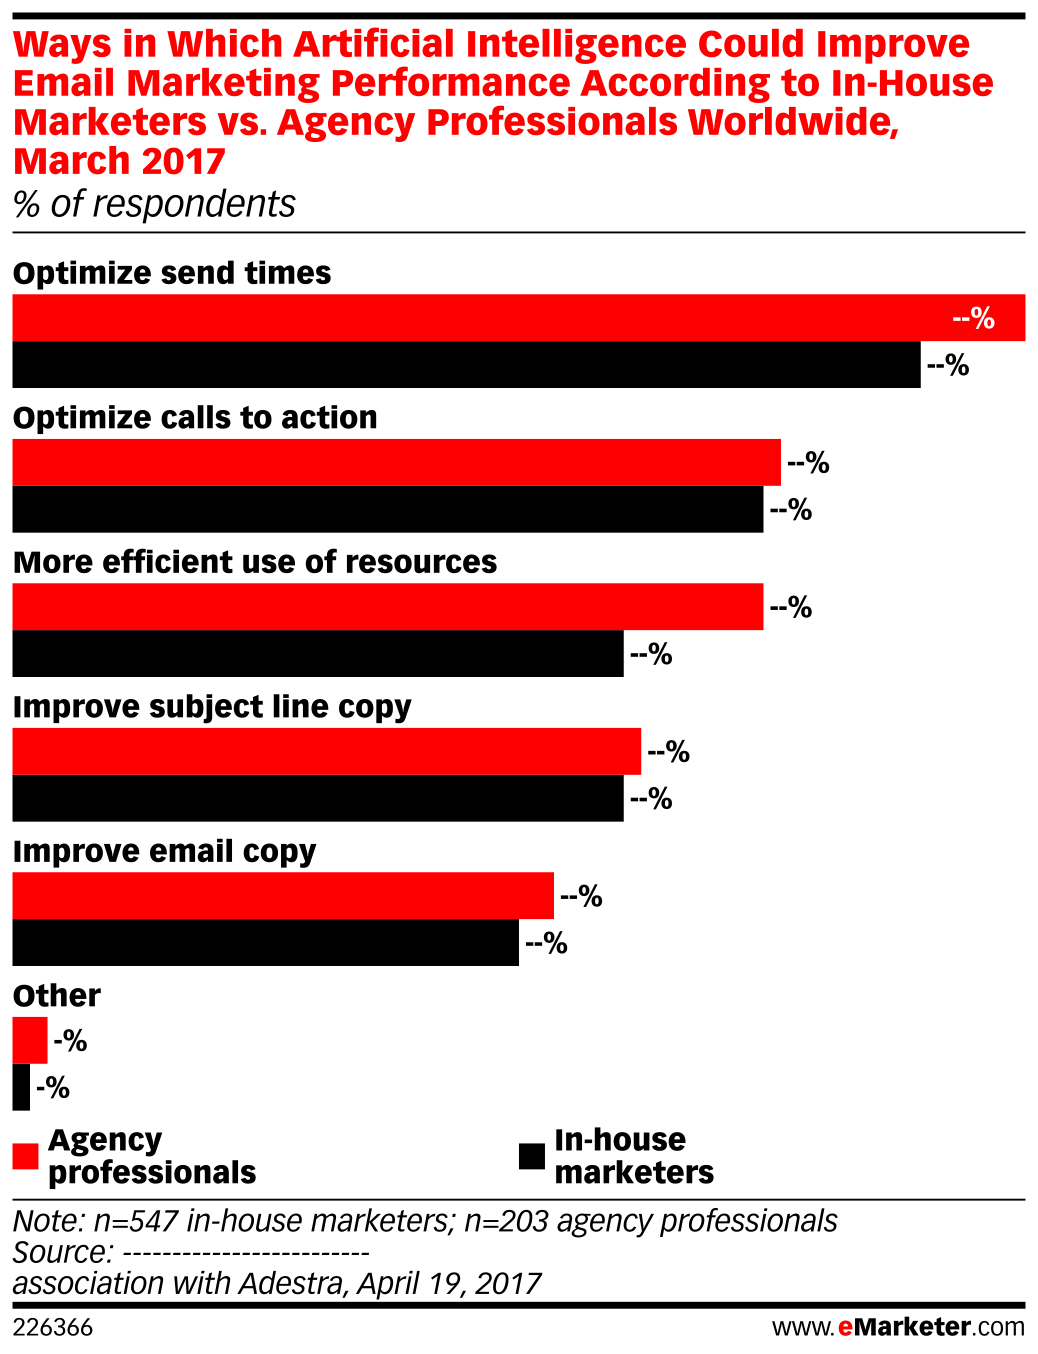 Ways in Which Artificial Intelligence Could Improve Email Marketing Performance According to In-House Marketers vs. Agency Professionals Worldwide, March 2017 (% of respondents)